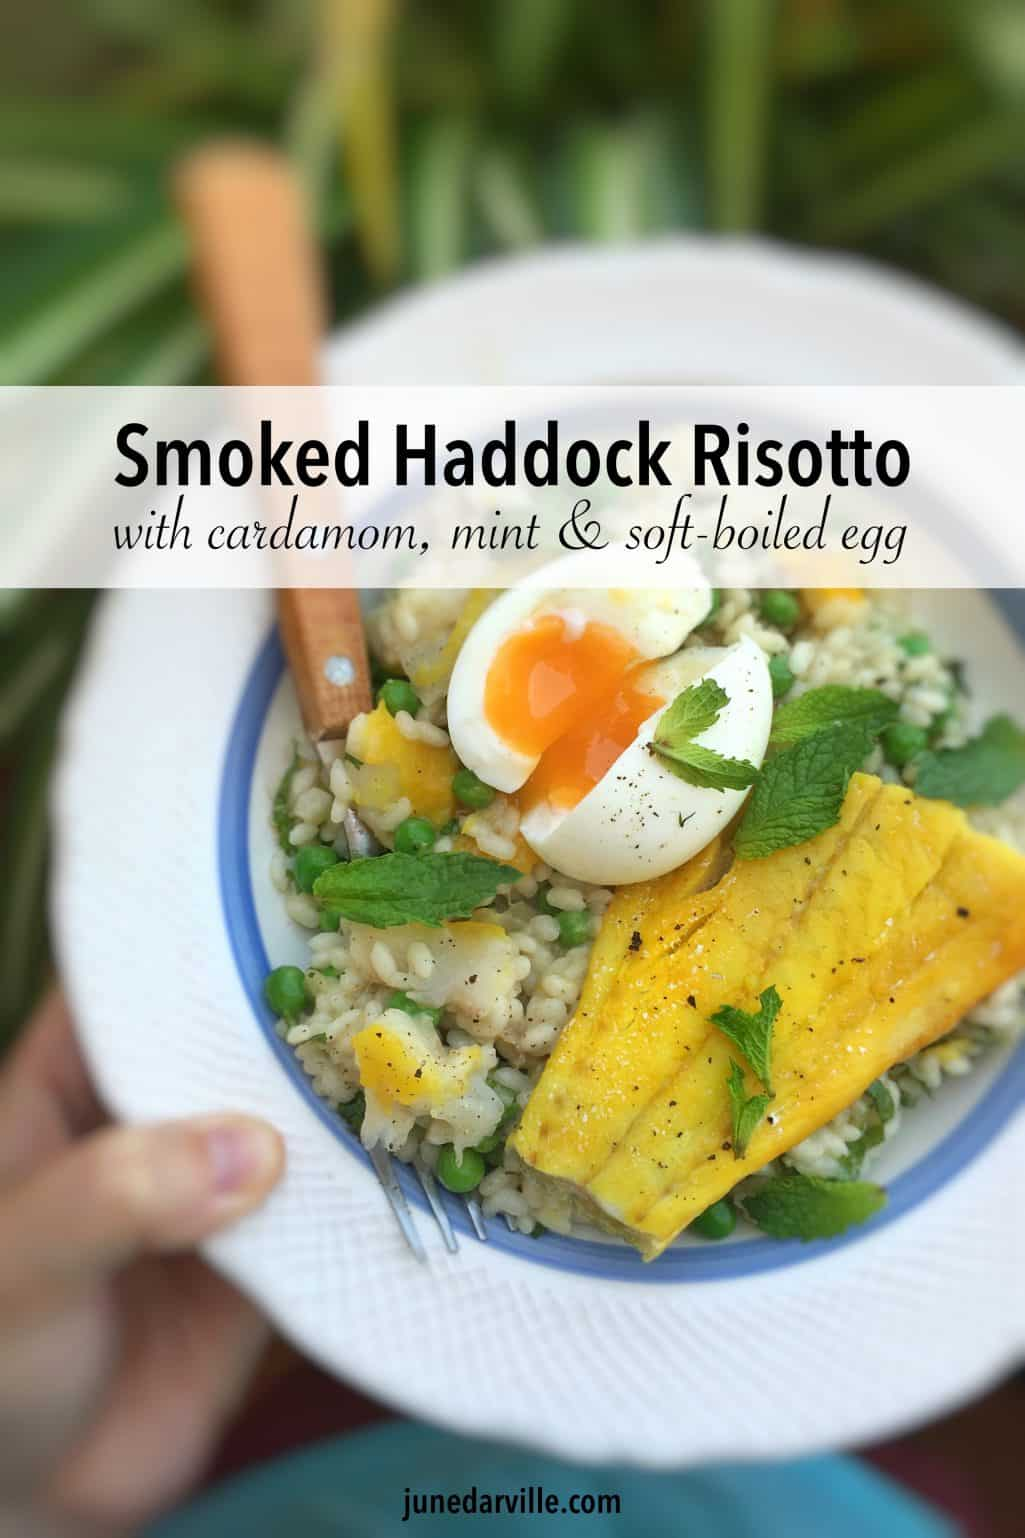 Do you like smoked fish? Then you will adore this buttery smoked haddock risotto with cardamom, fresh mint and a runny soft-boiled egg on top!